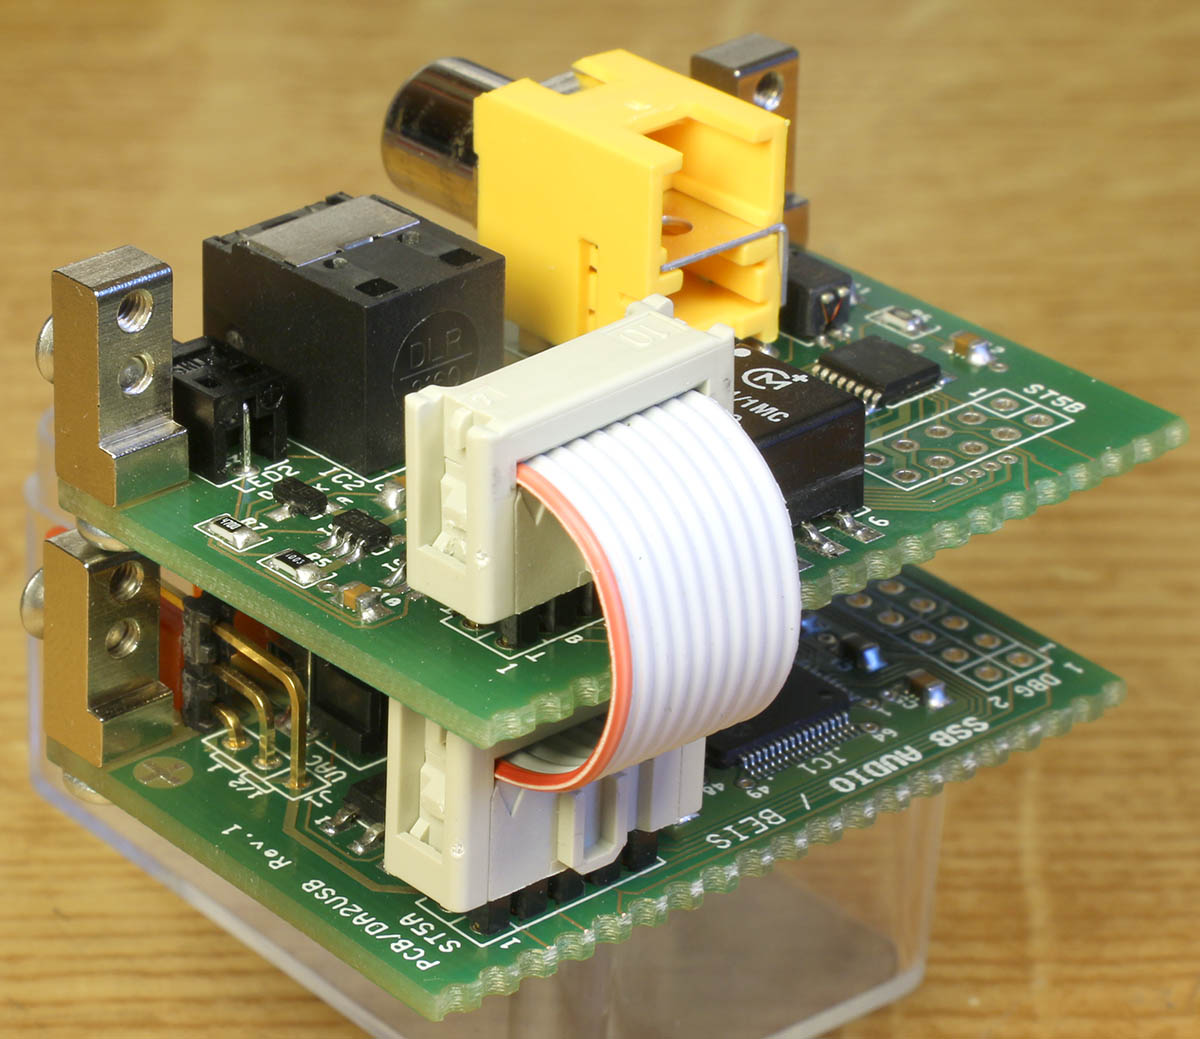 Da2usb Digital Audio To Usb Interface Pcb Led Circuit Beginner Seeks Help Electrical Engineering Stack Stacked